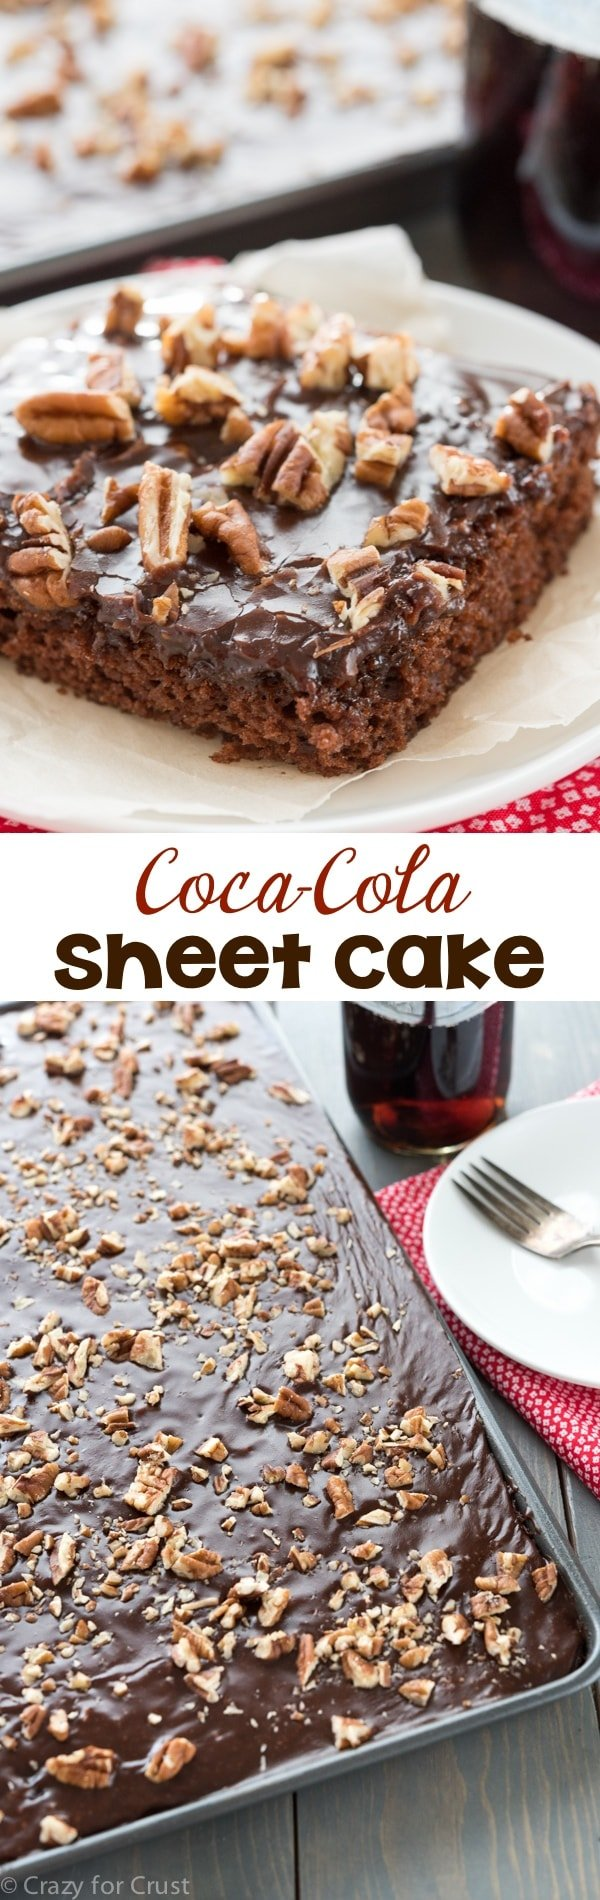 This Coca Cola Sheet Cake is perfect for a potluck! It's and easy recipe that's fast, and egg-free with the BEST frosting ever!